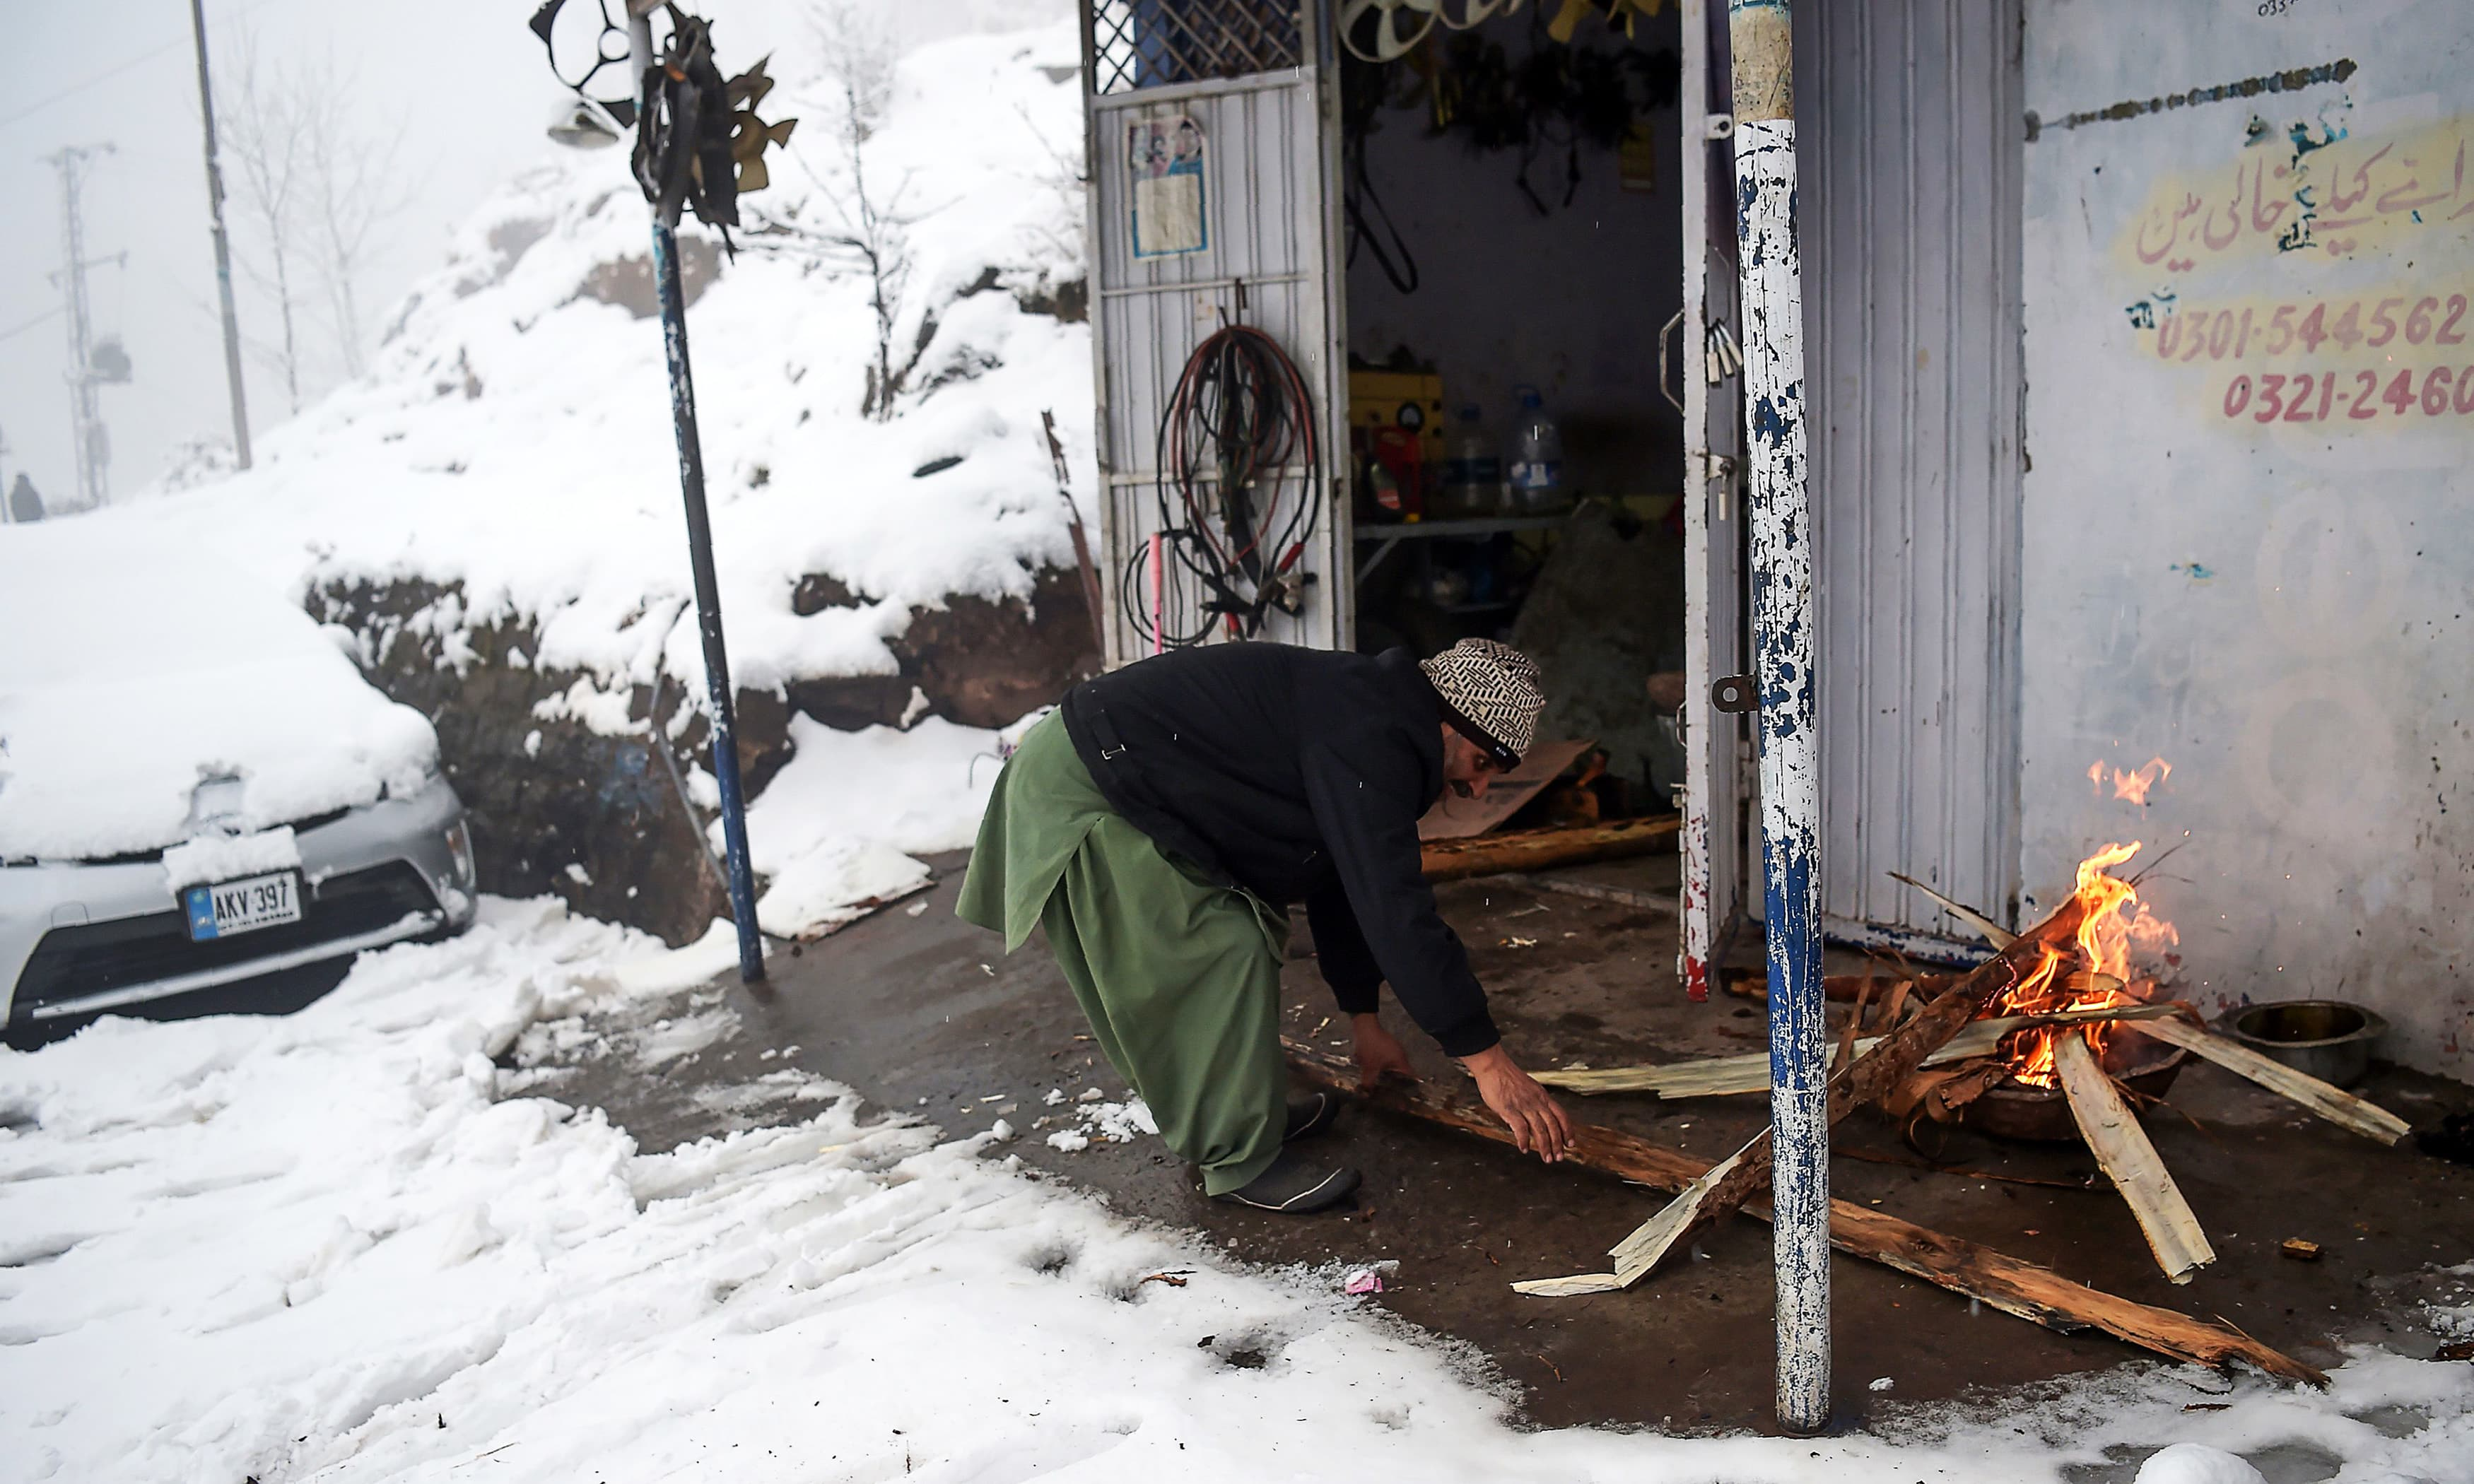 A man lights firewood outside his workshop during snowfall in Murree. —AFP